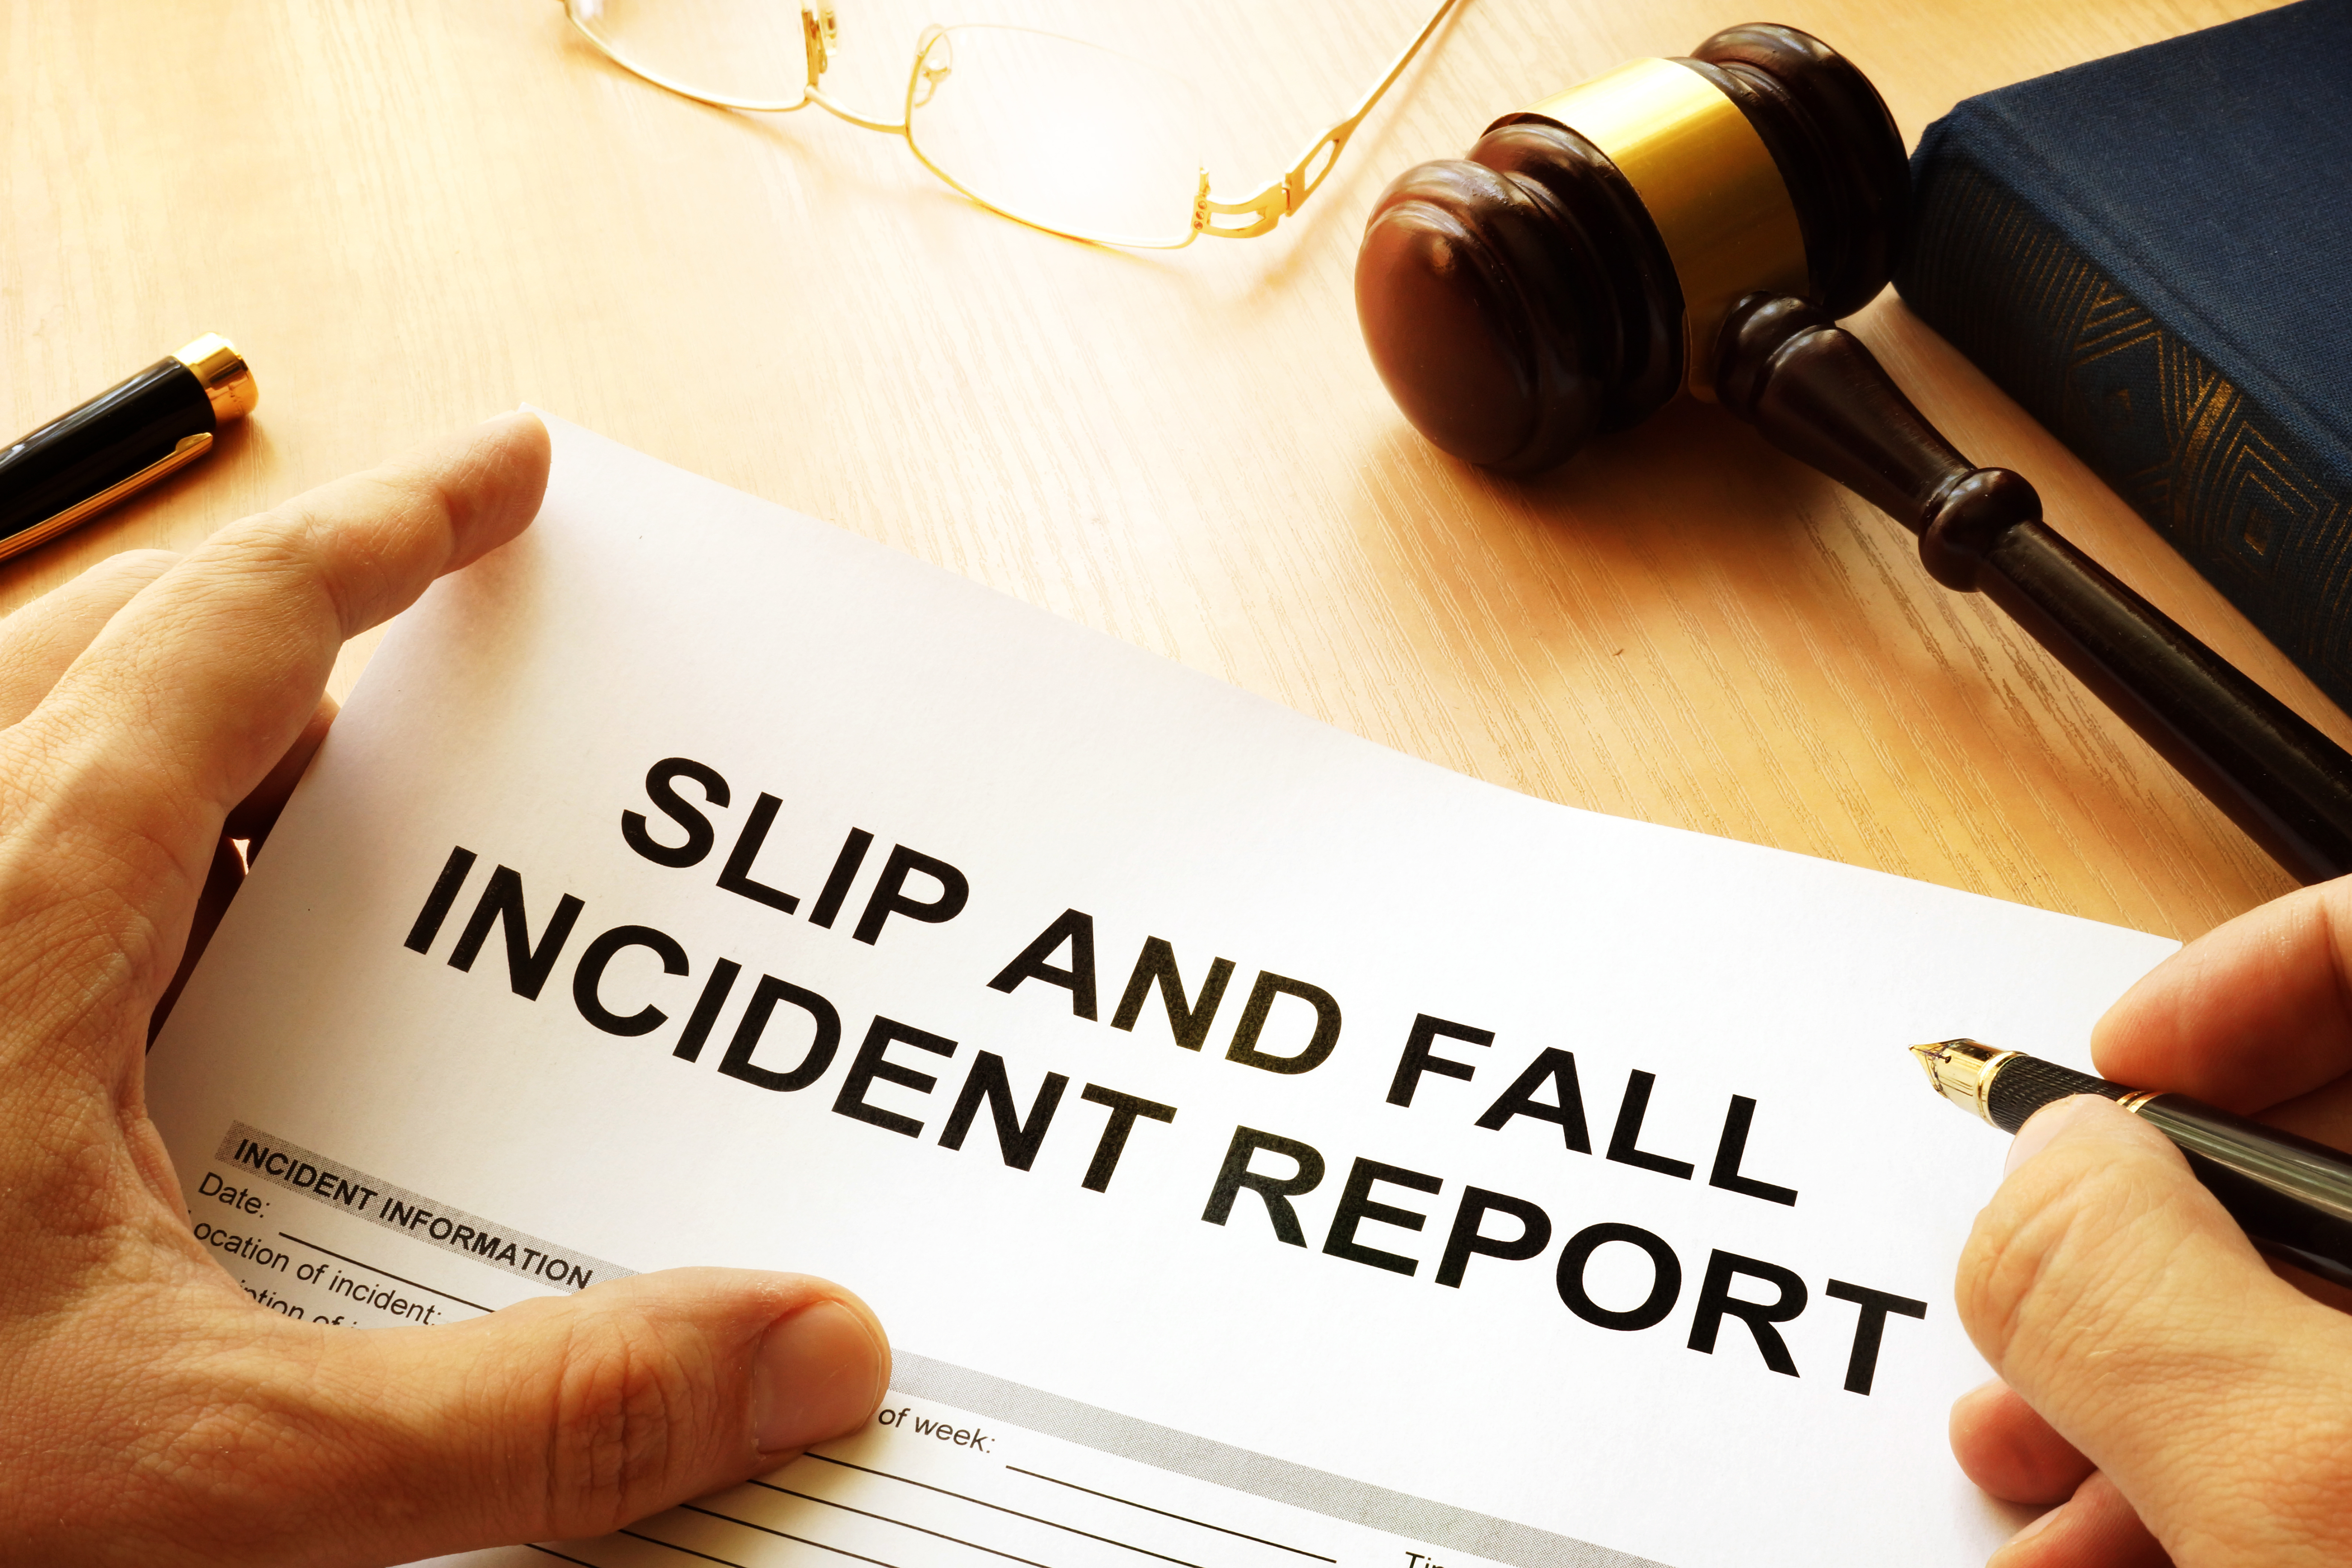 Trip and Fall Attorney NJ